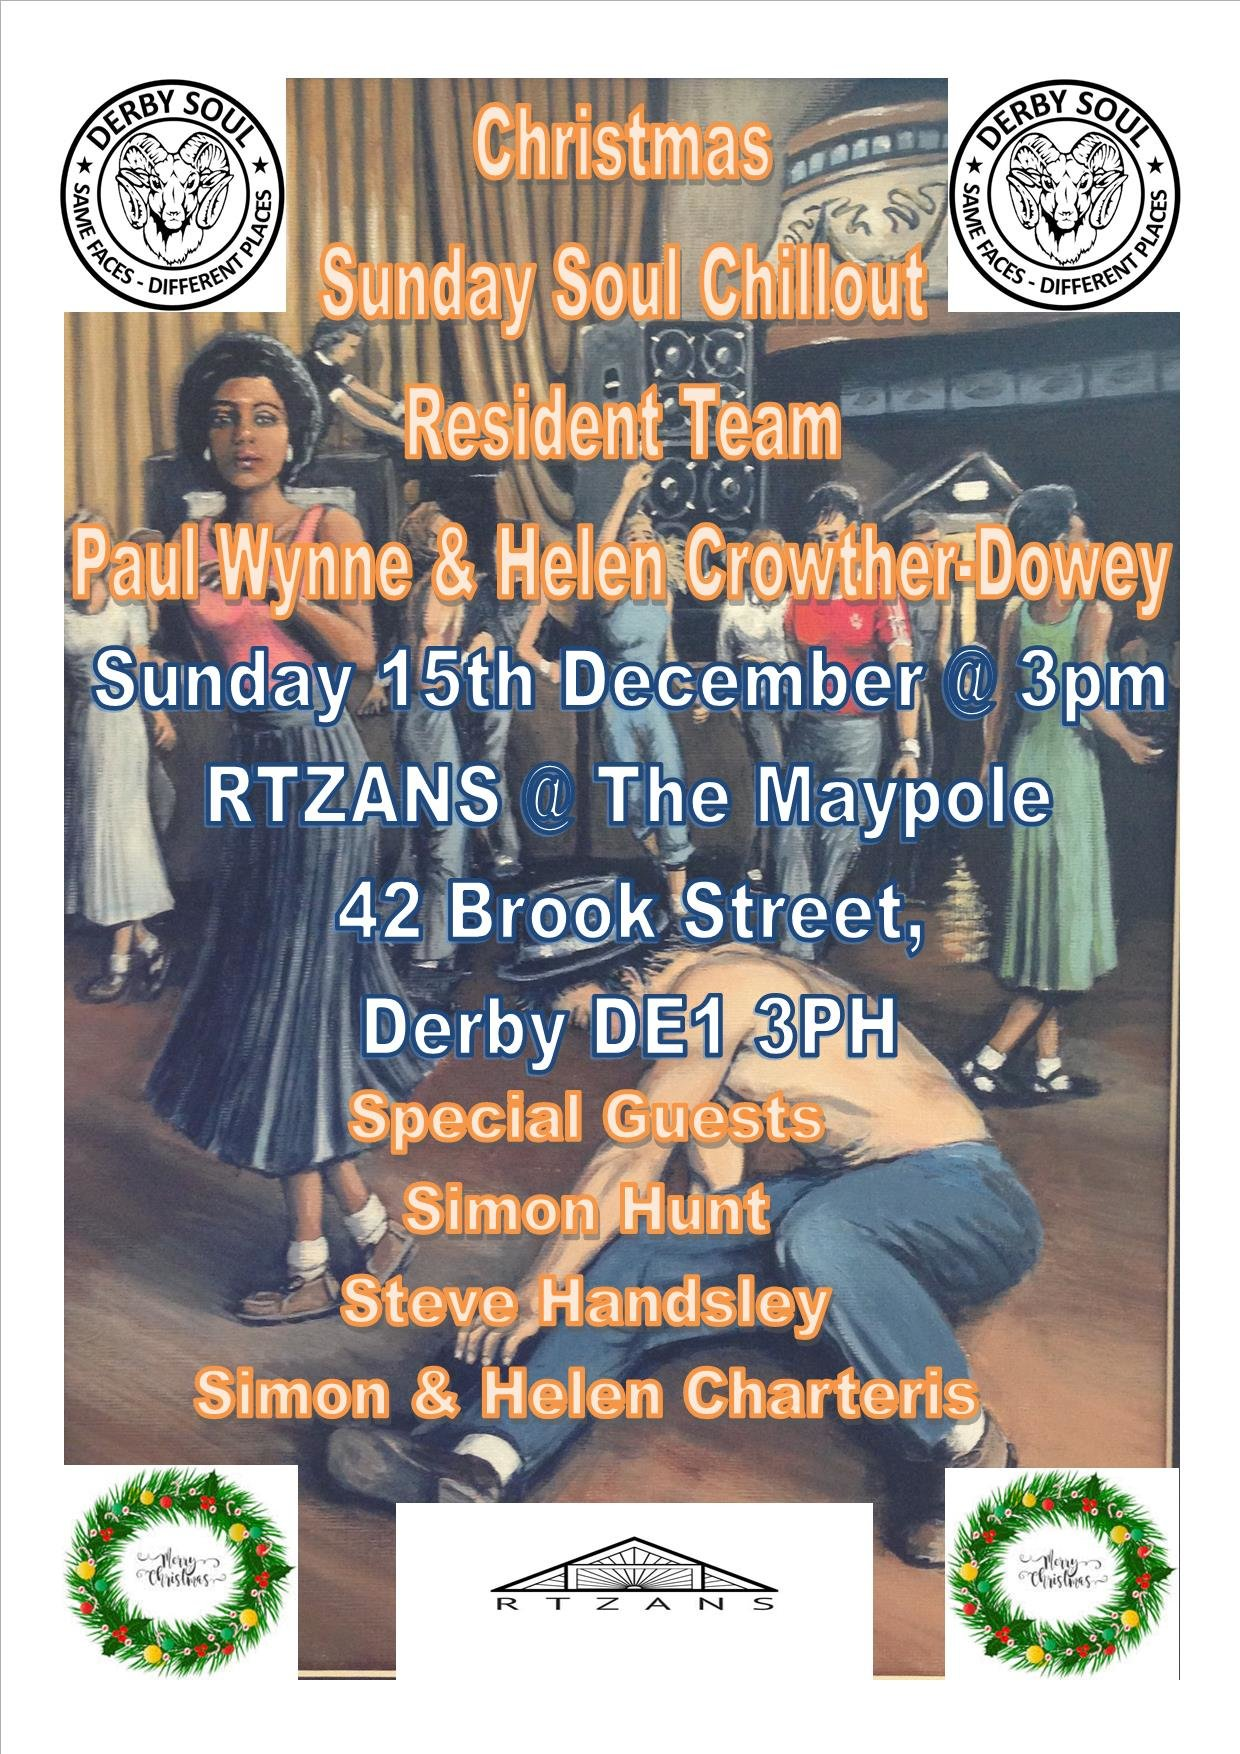 Sunday Christmas Chillout flyer